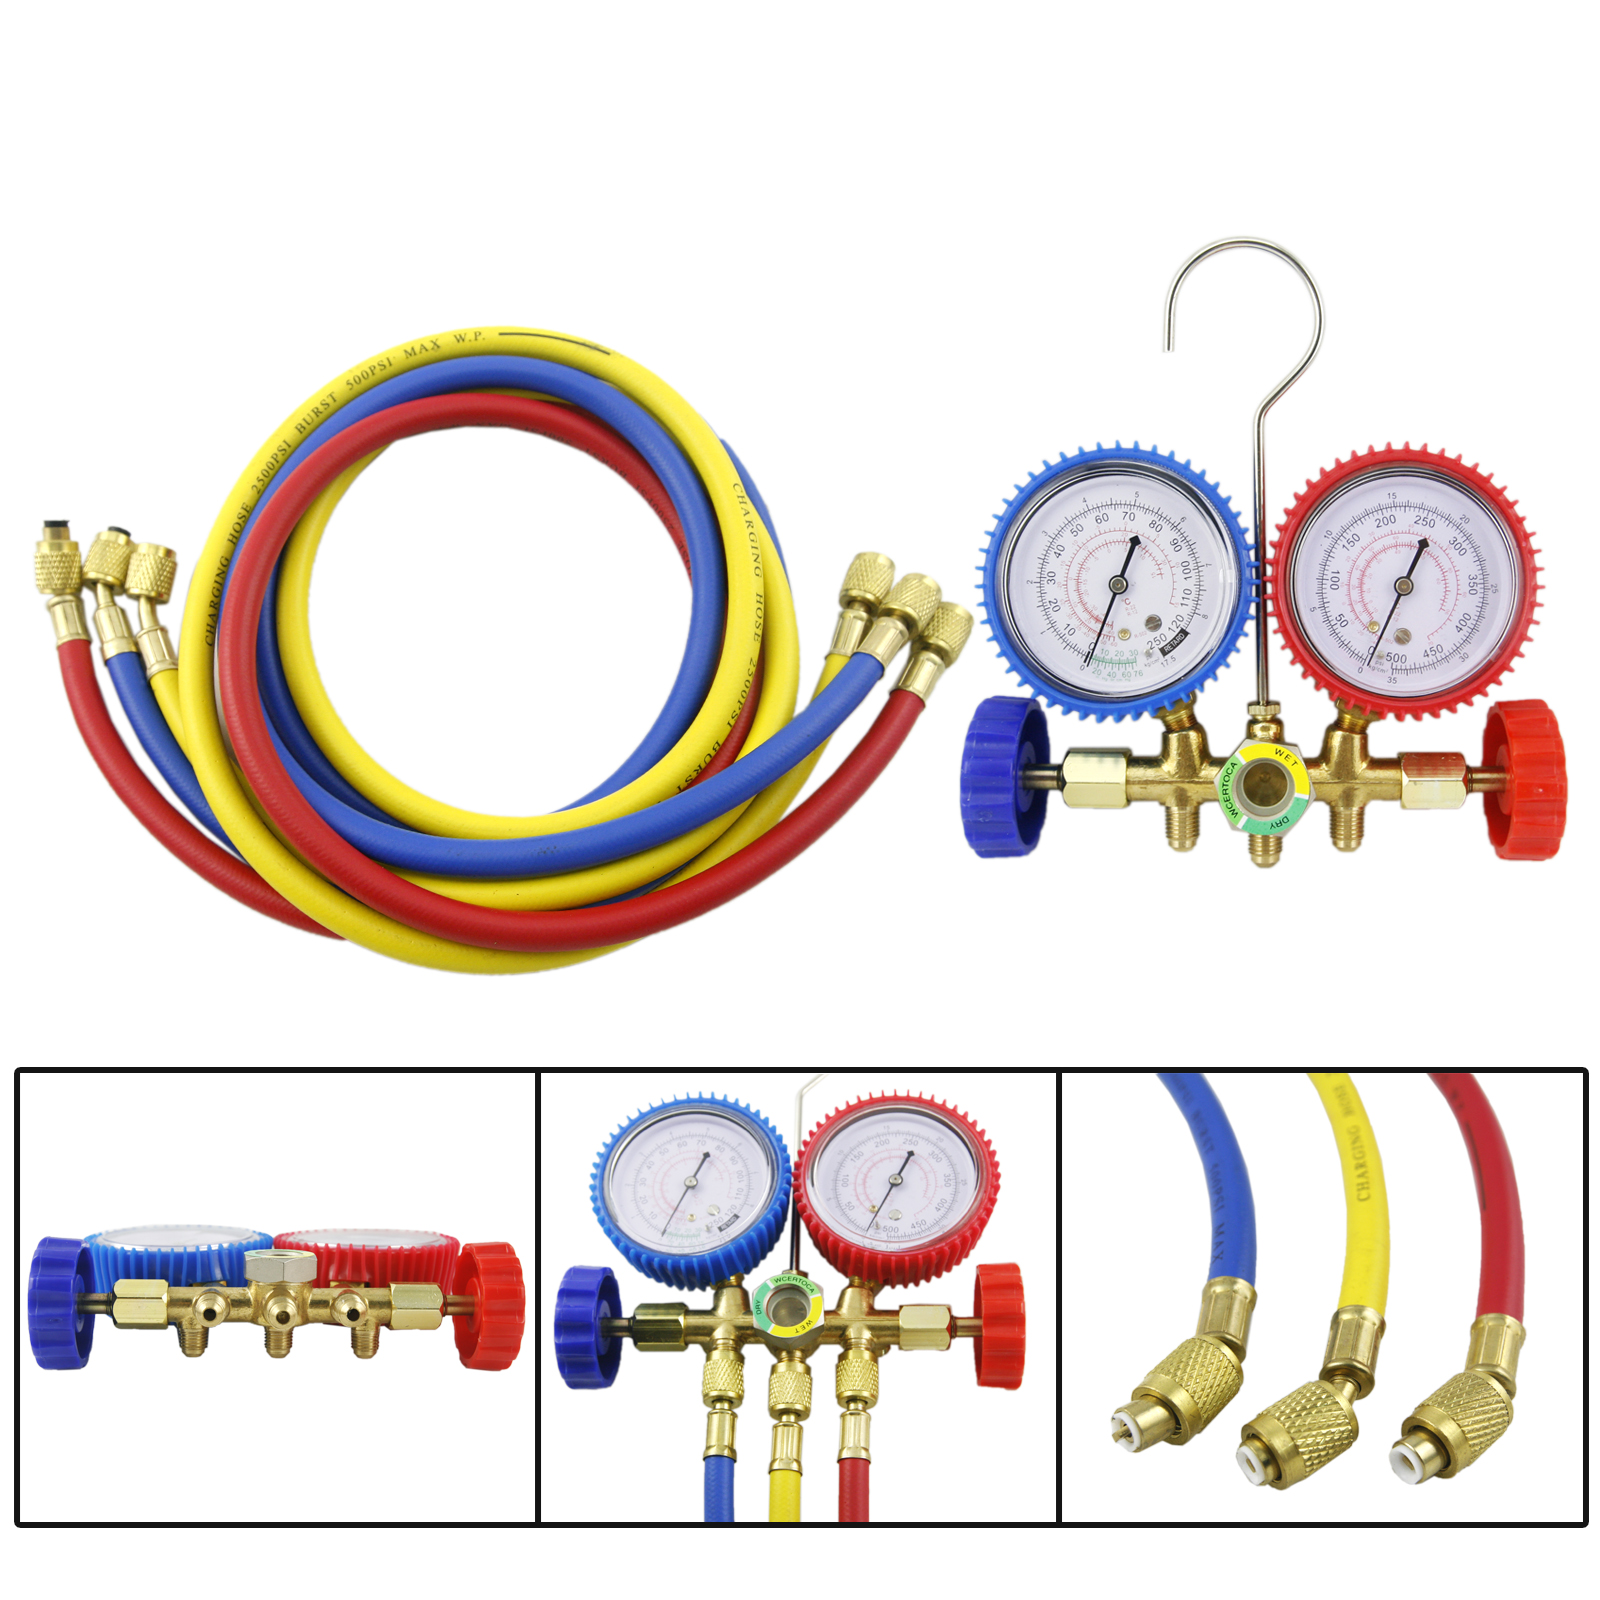 Orion Motor Tech R12 R22 R502 HVAC A/C Diagnostic Manifold Gauge Set